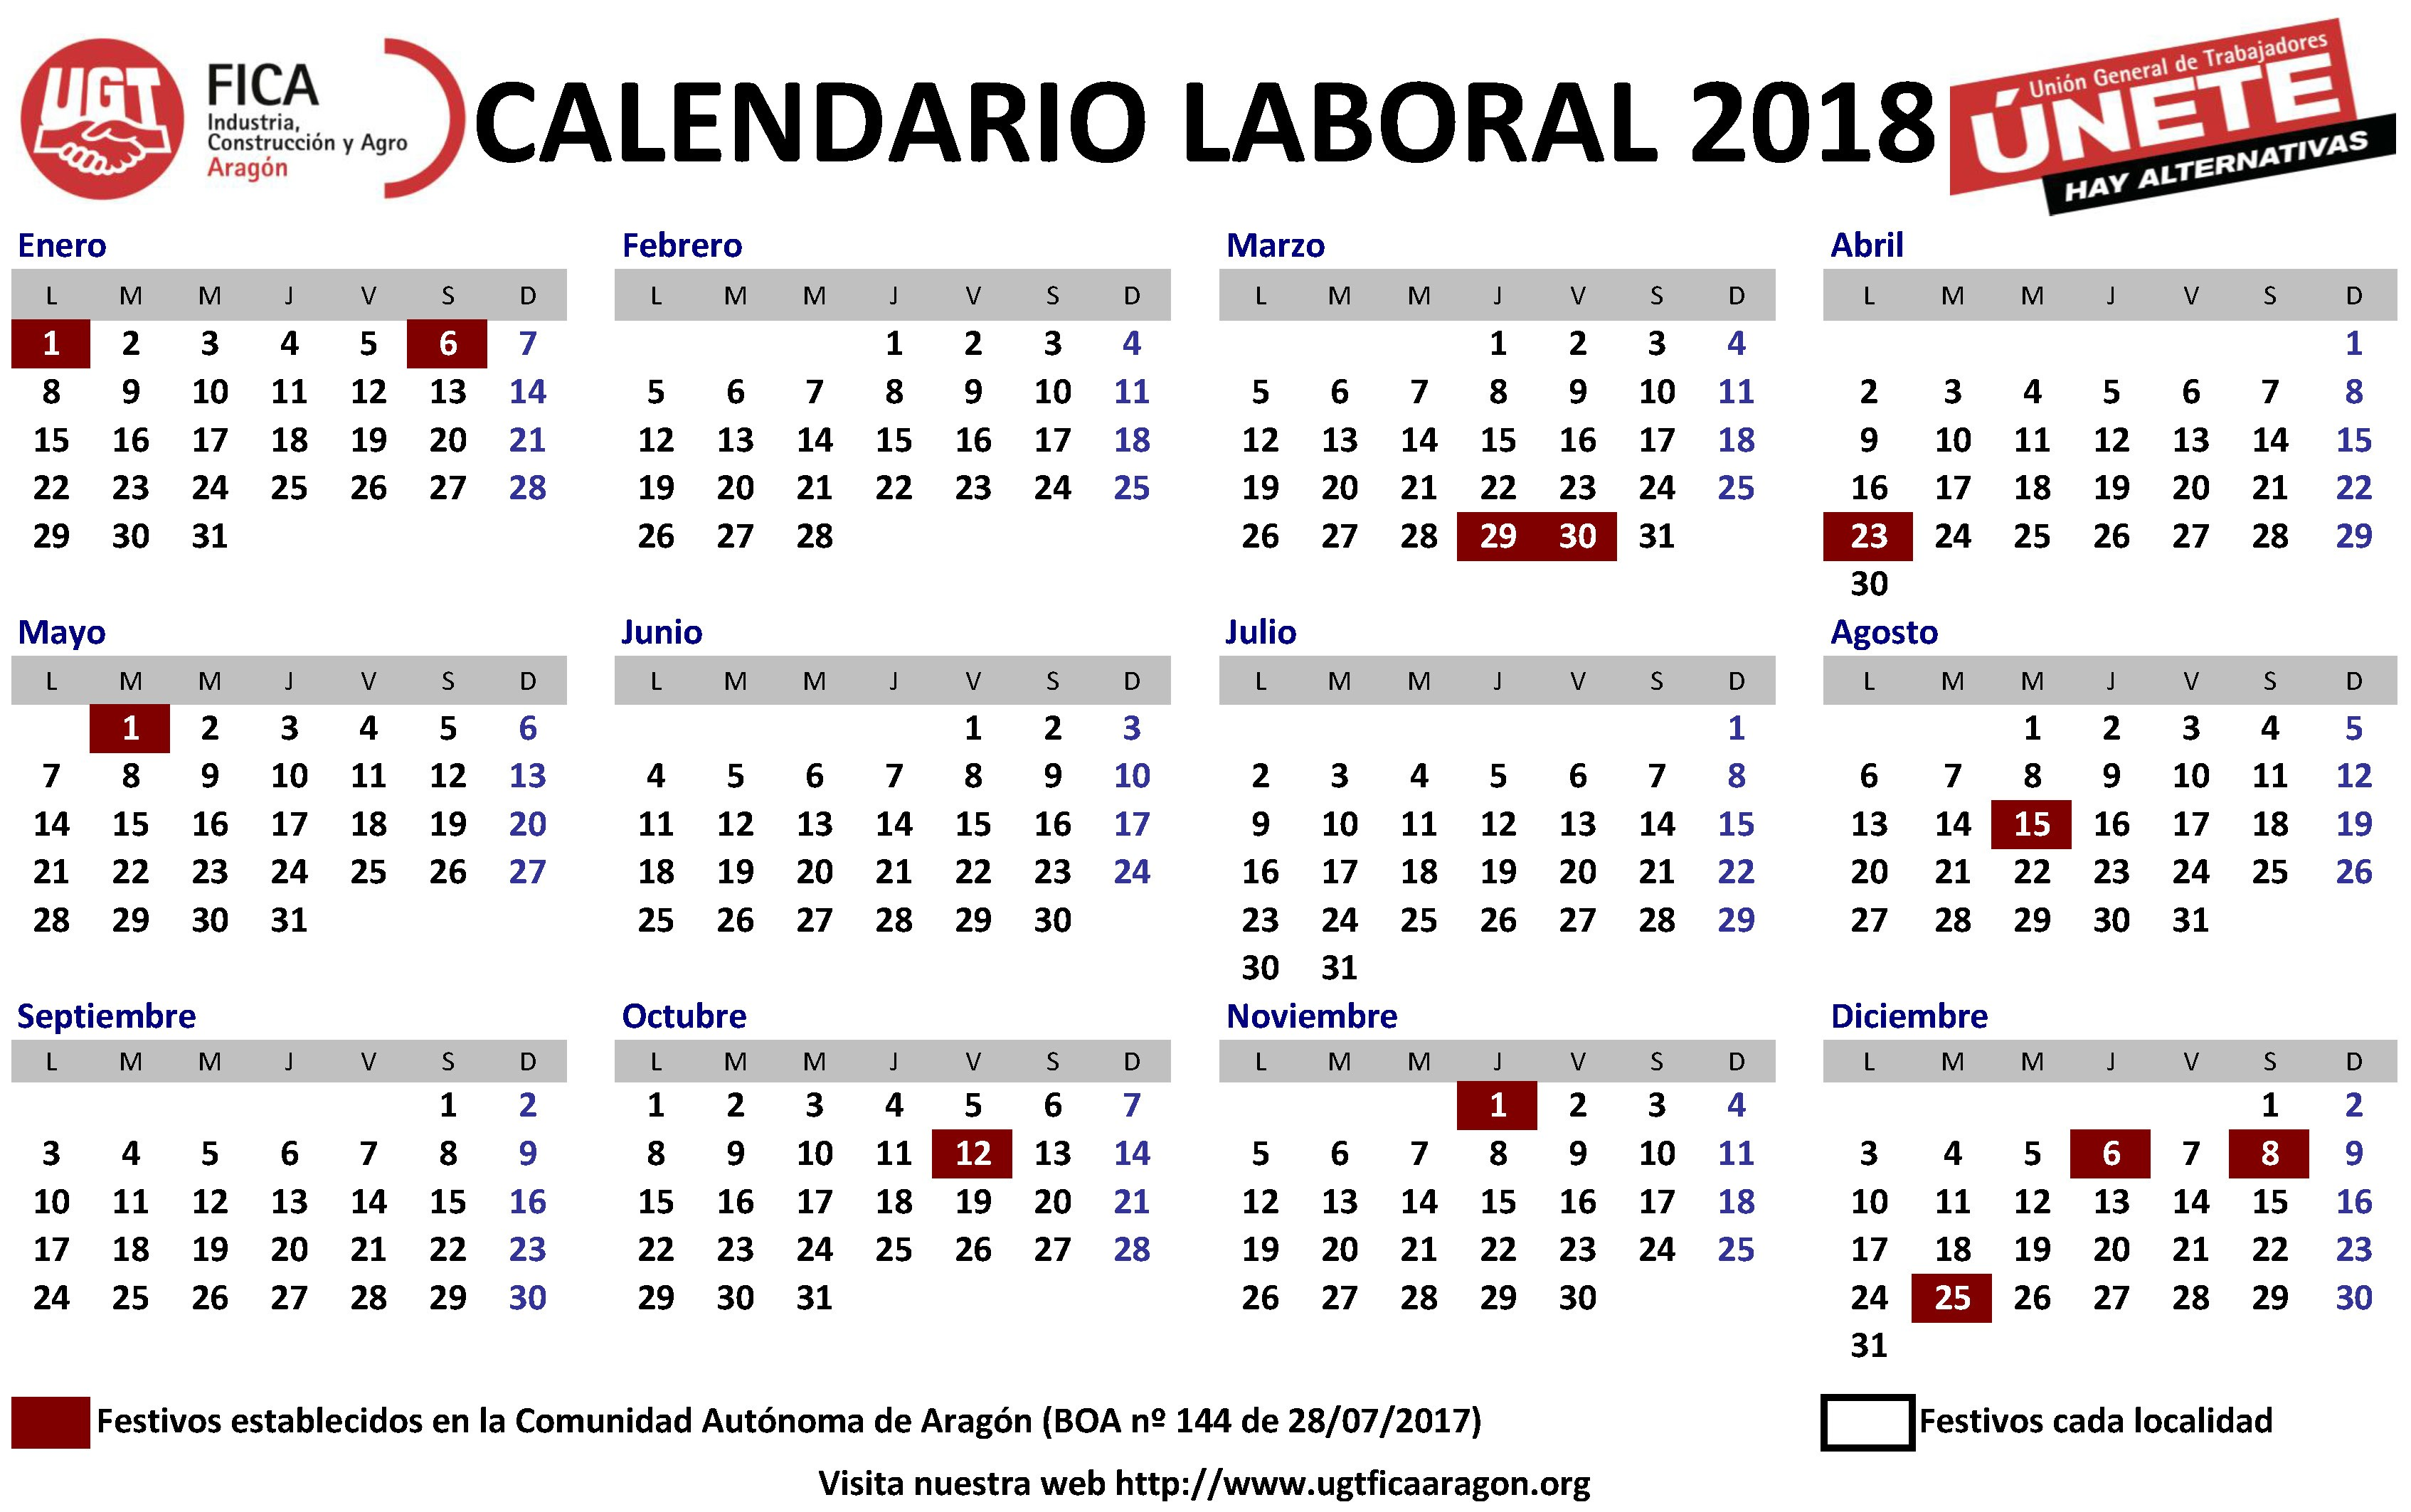 Calendario laboral 2018 plantillas para imprimir y descargar